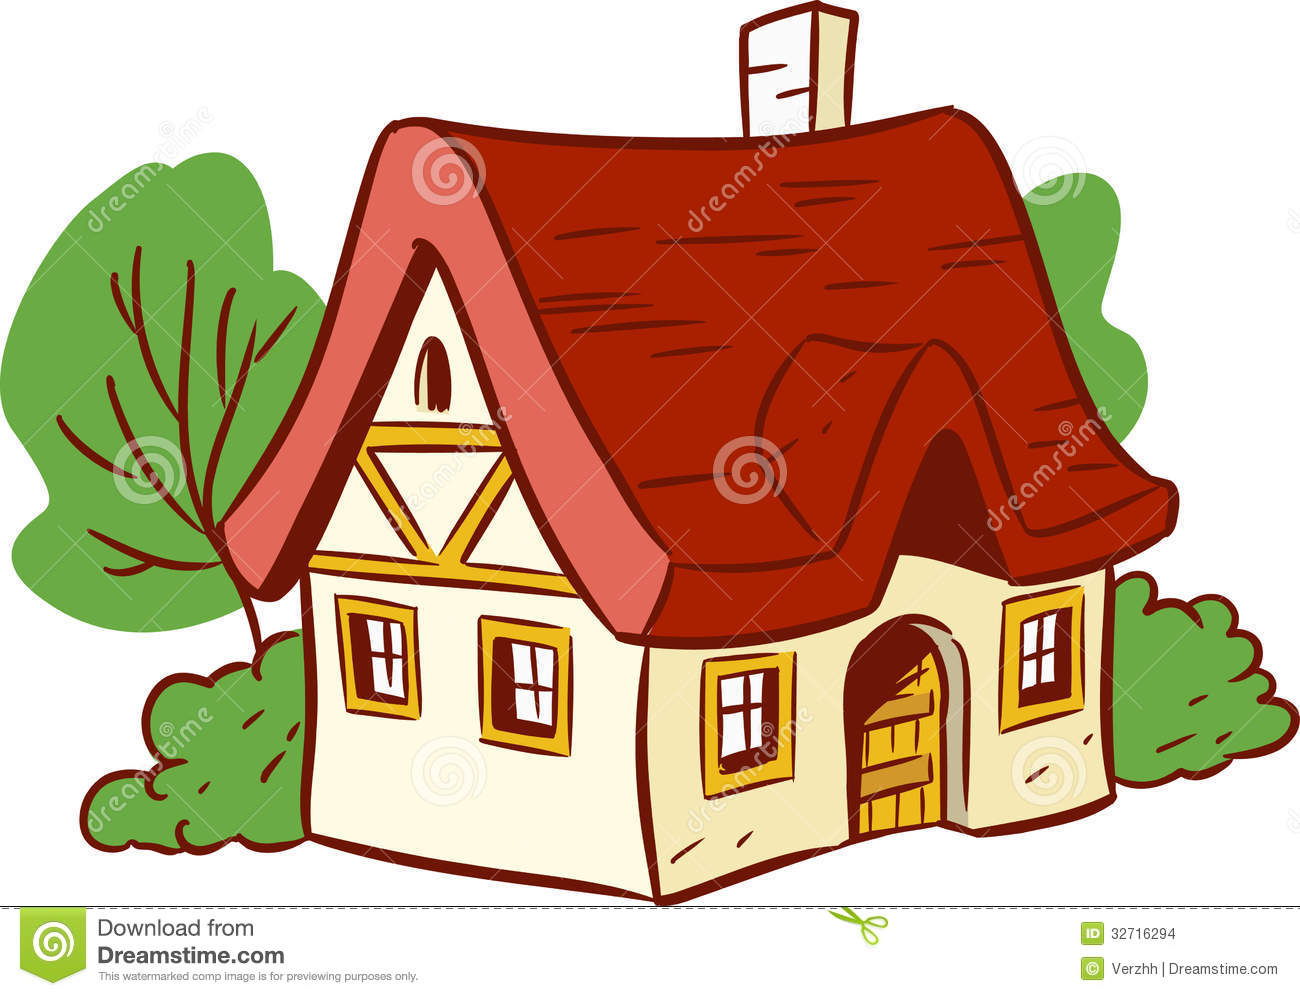 Small Cartoon House Illustration Shows Done Style Isolated White Background 32716294 1300x996